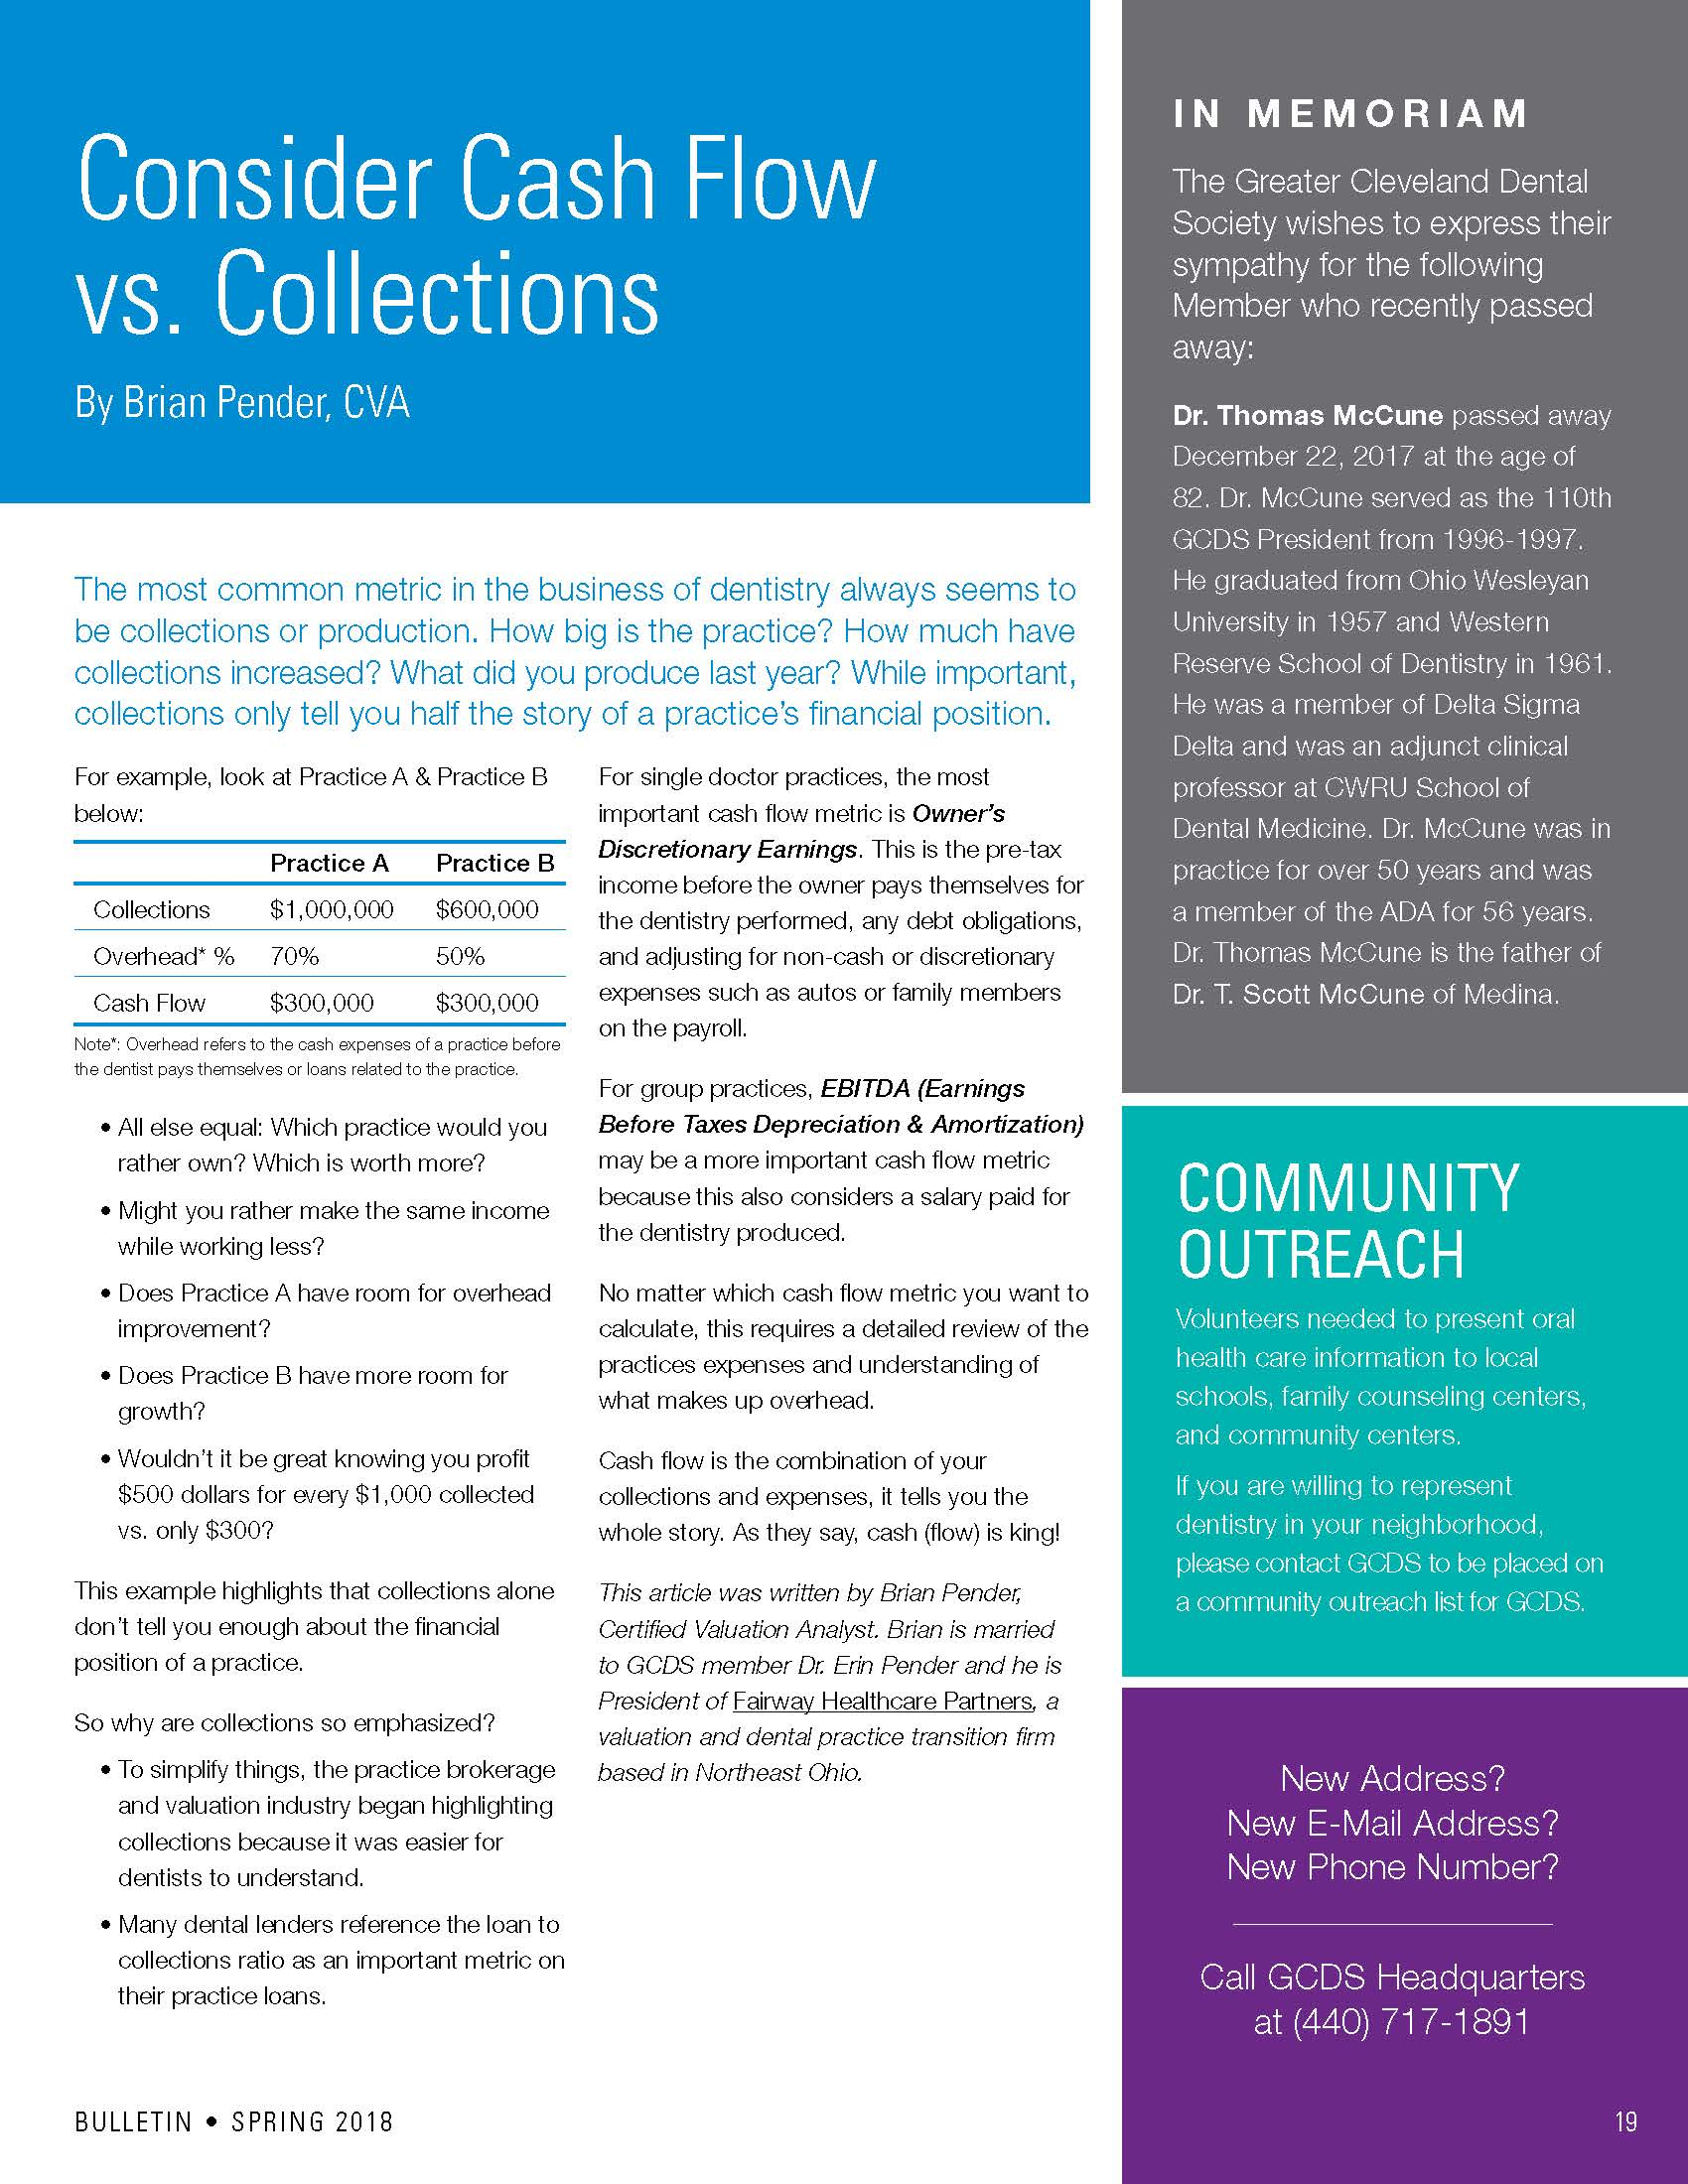 Consider Cash Flow Vs. Collections